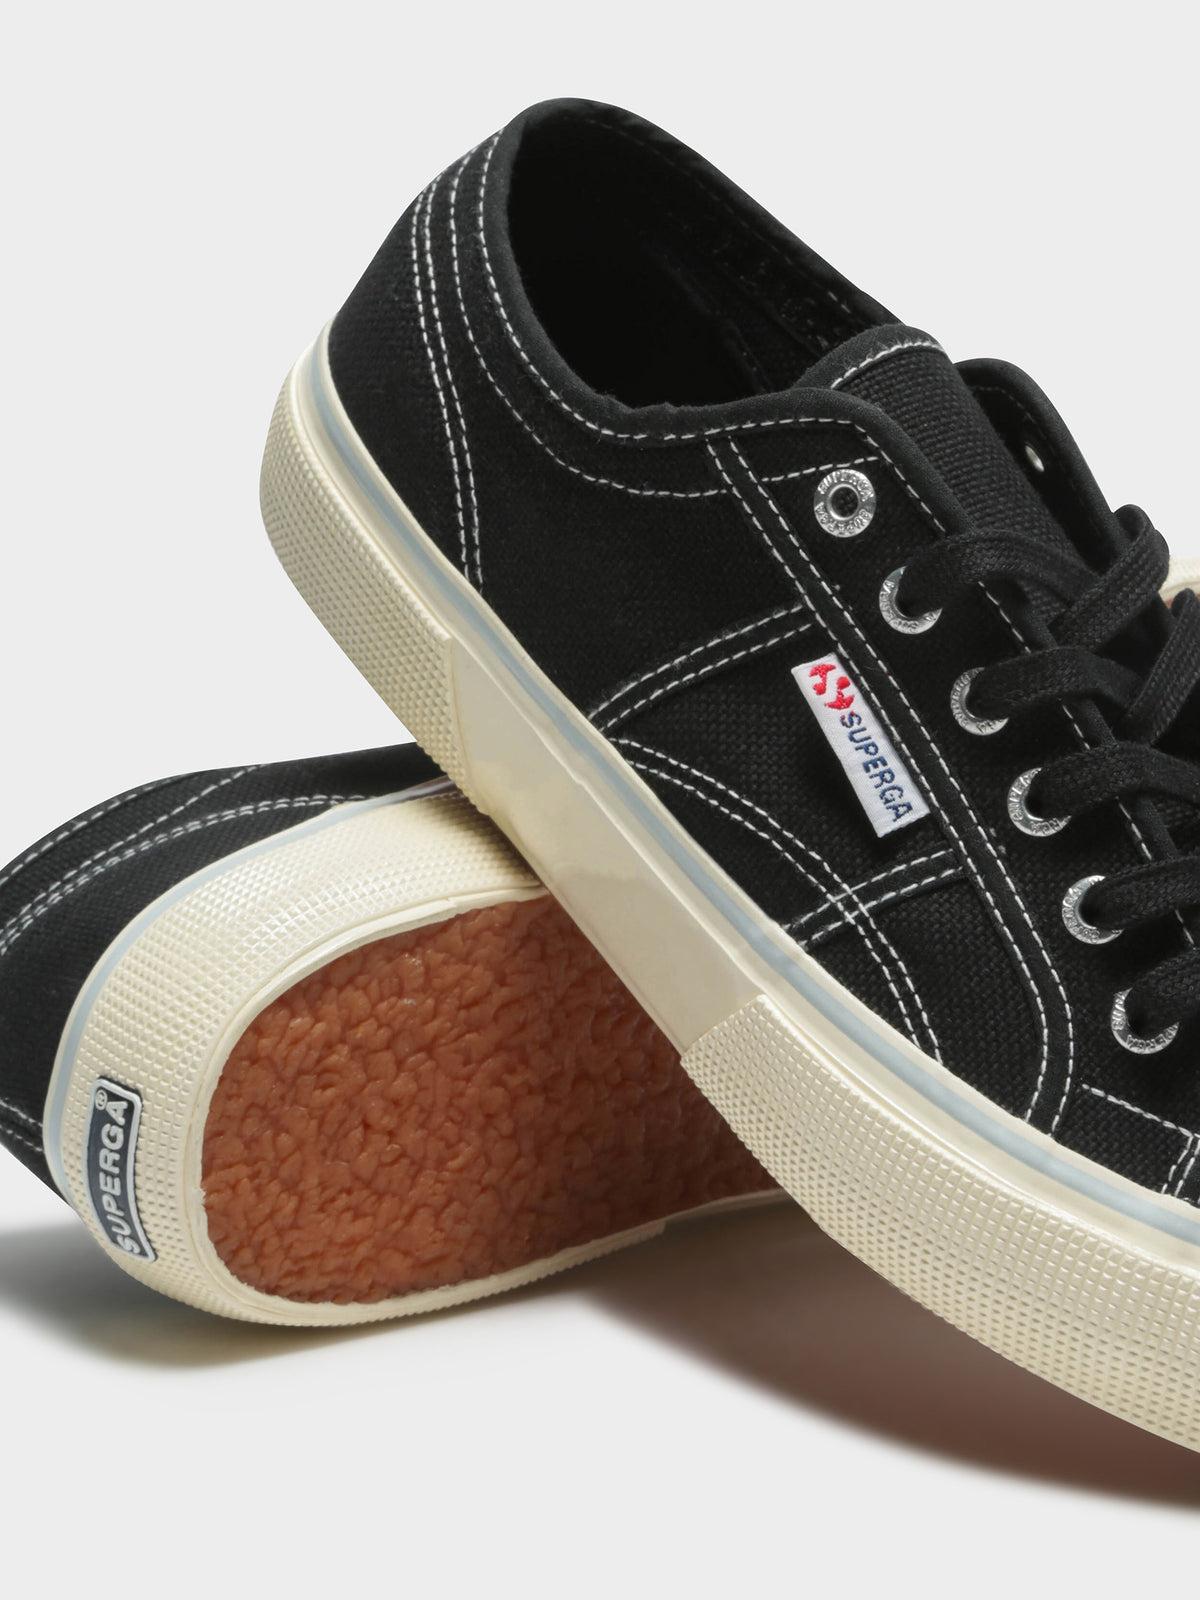 Mens 2490 Cotu Sneakers in Black & Blue